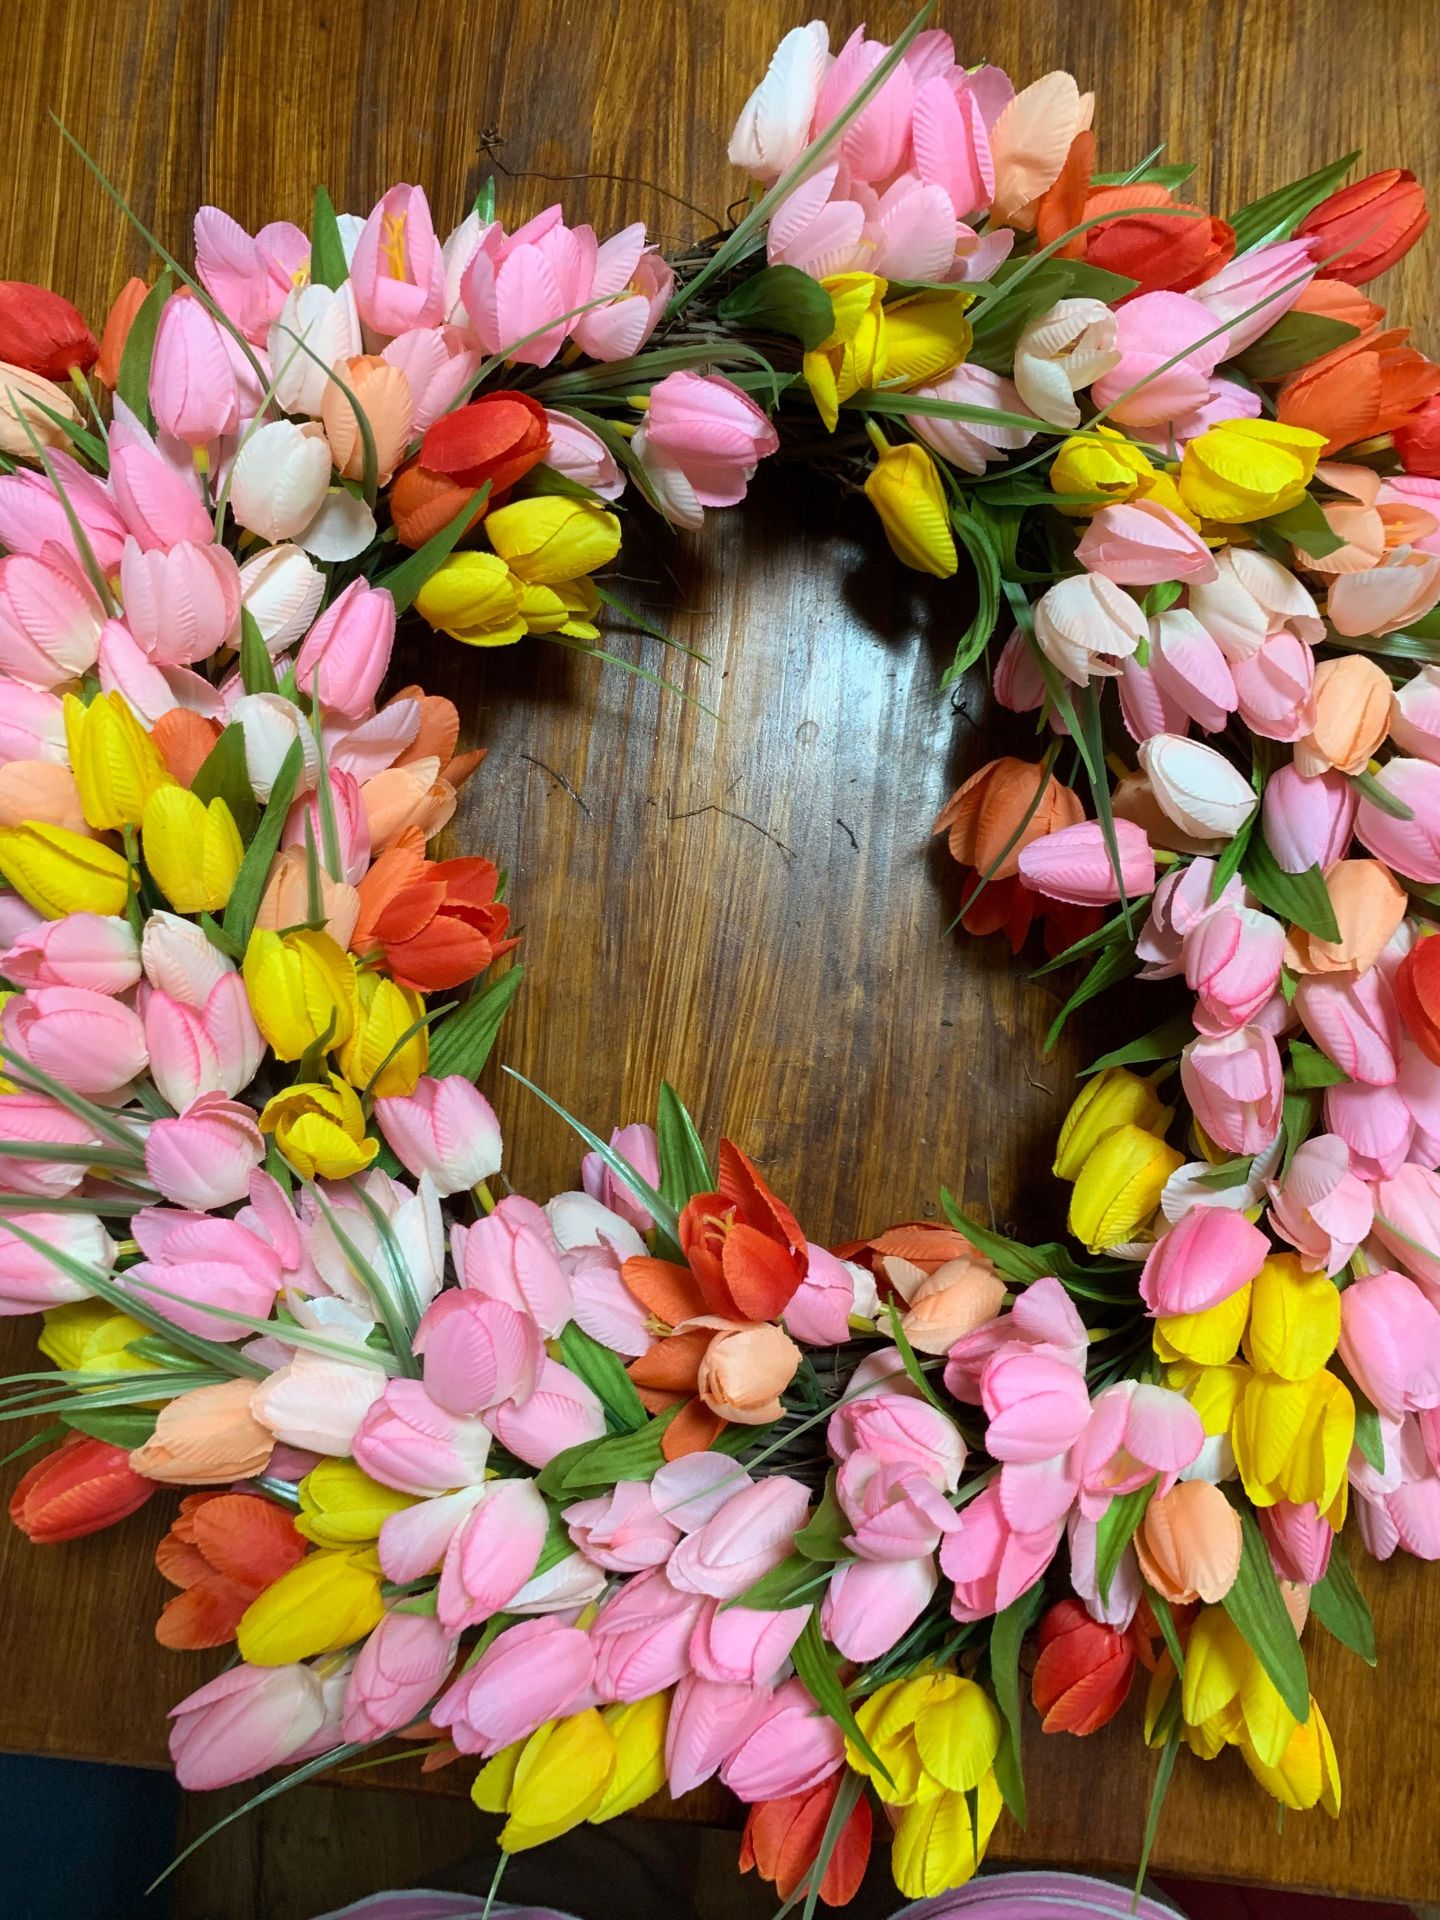 tulips7-1 Tulip Wreath DIY Tutorial: How to Add a Dash of Spring to Your Front Door